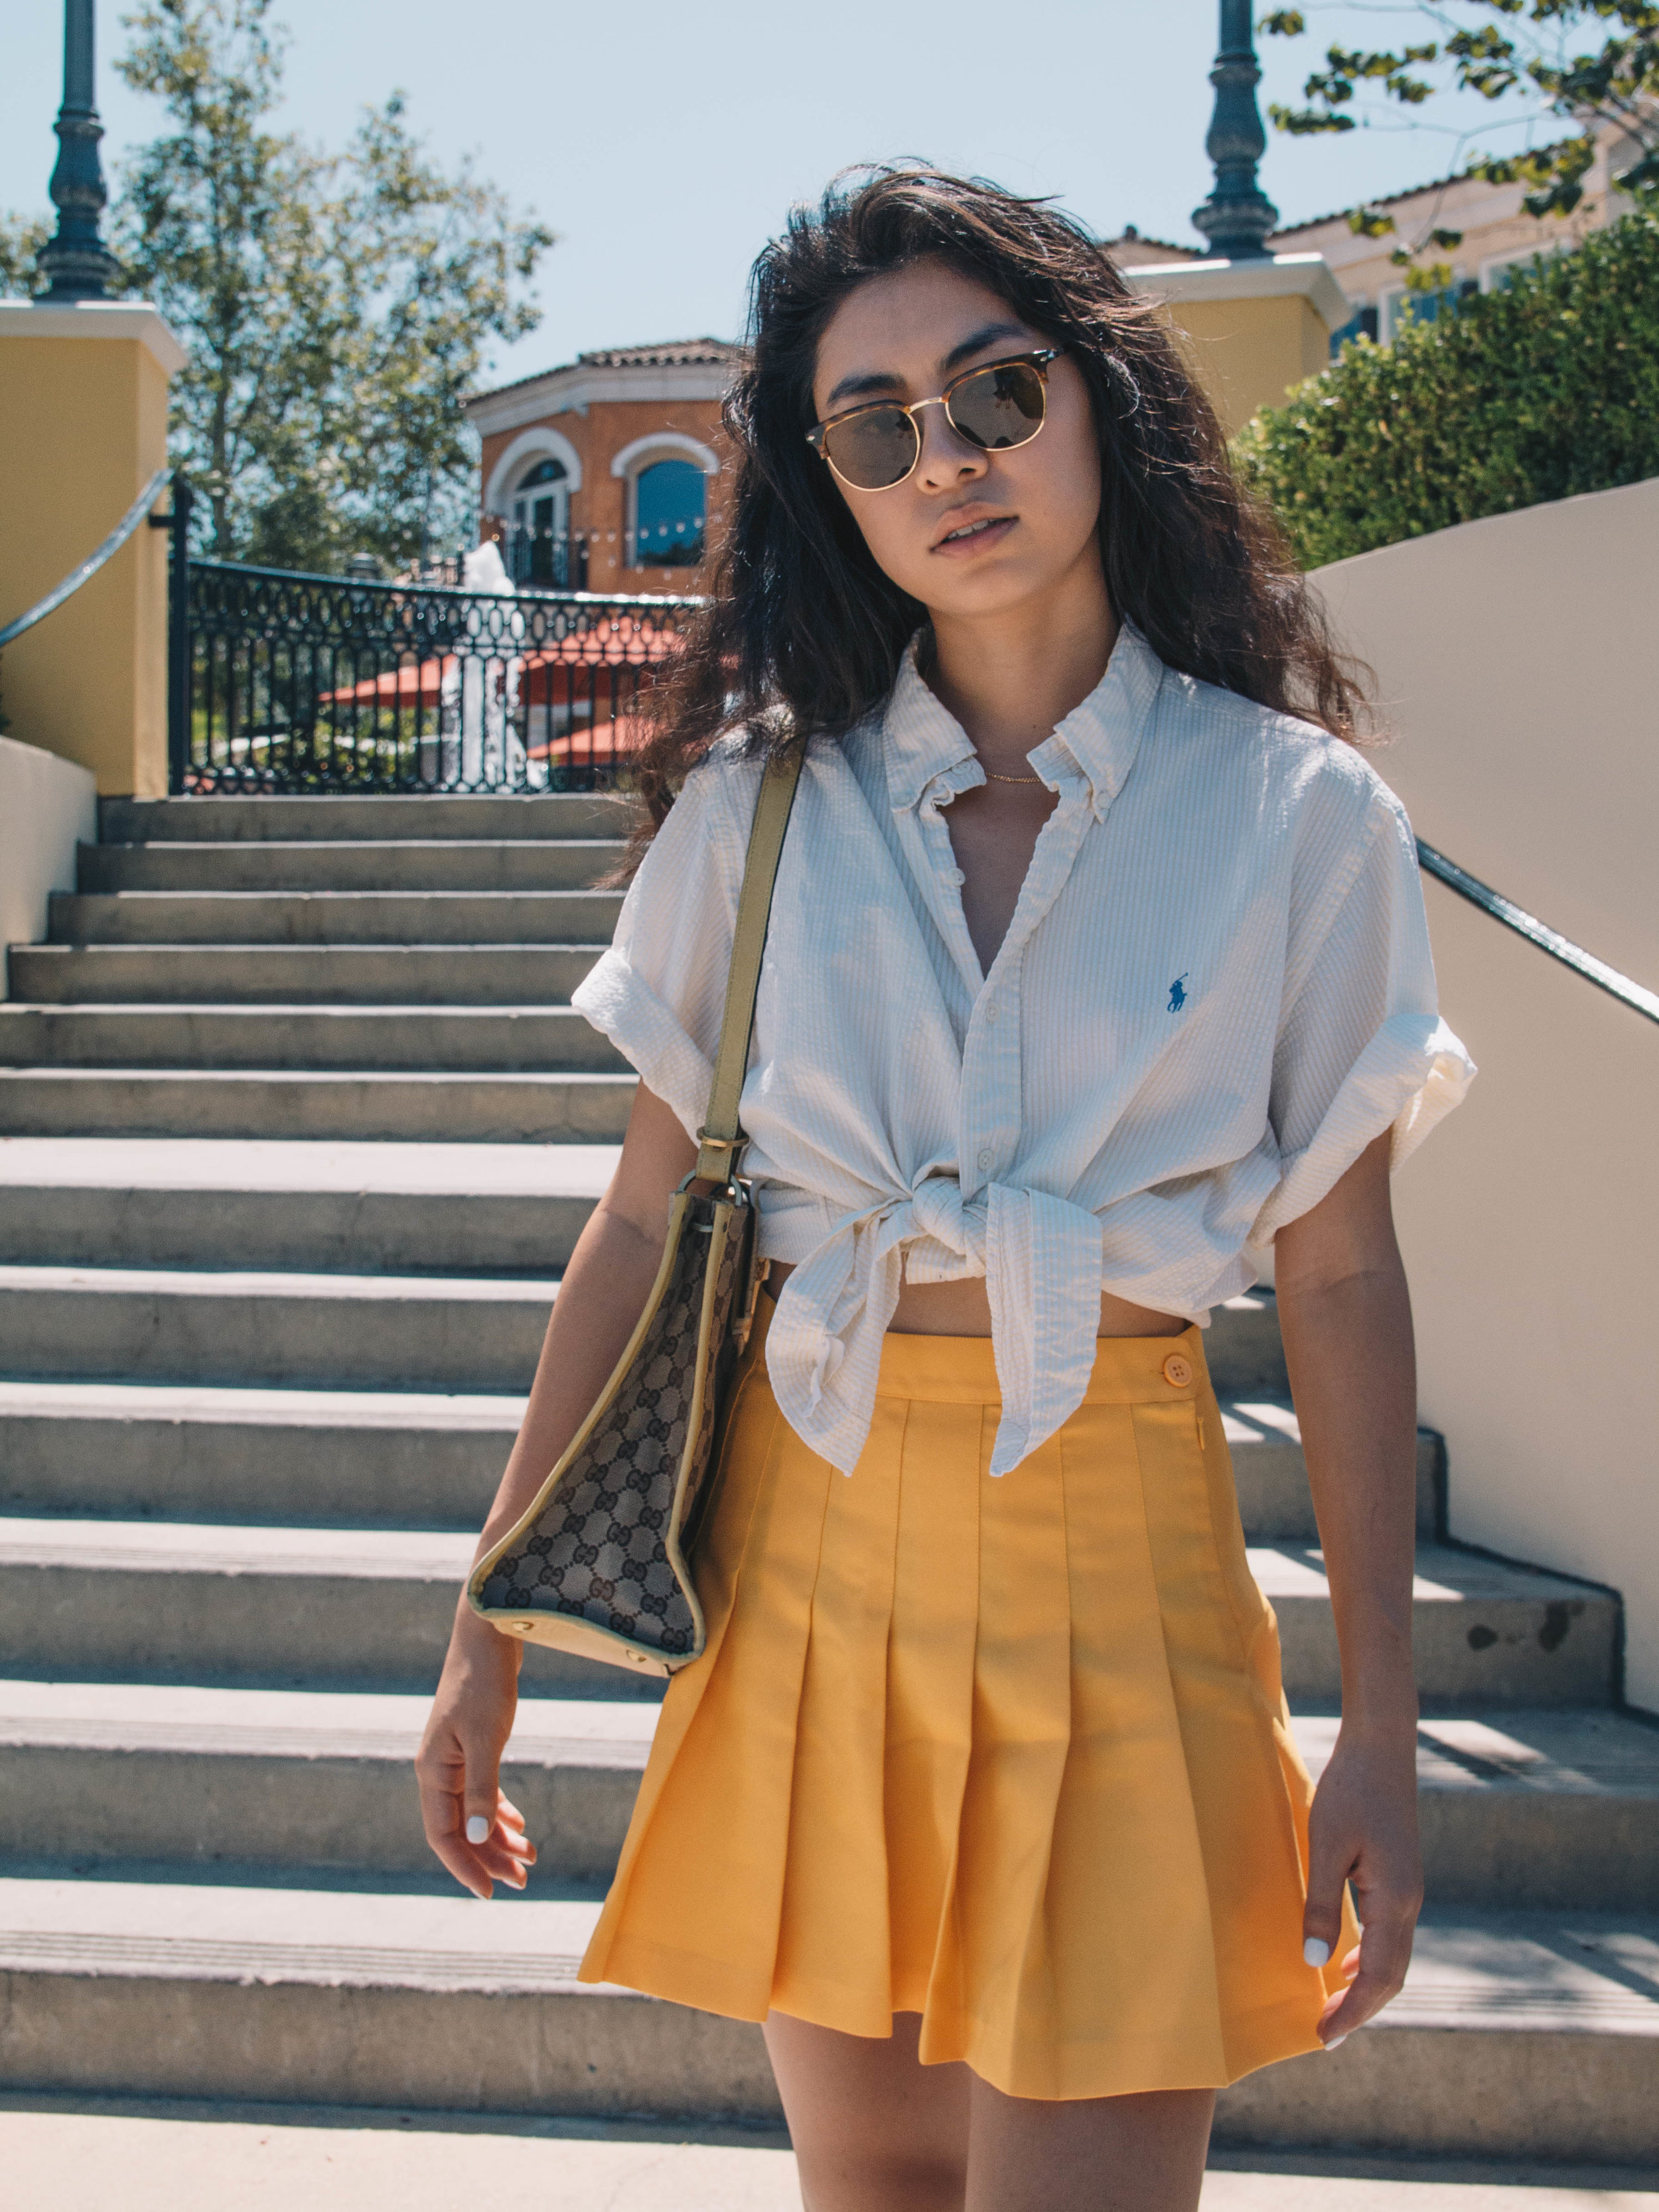 sister sunshine -  this yellow button down is roomy, comfy, and 100% cotton. whether it's tucked into a pair of denim shorts or tied up into a crop top, it's become my go-to piece for all things casual. the best part? it was free - thanks for letting me steal it, dad! button down shirt - 2nd hand (ralph lauren polo)tennis skirt - american apparelwhite sneakers - chuck taylorpurse - vintage